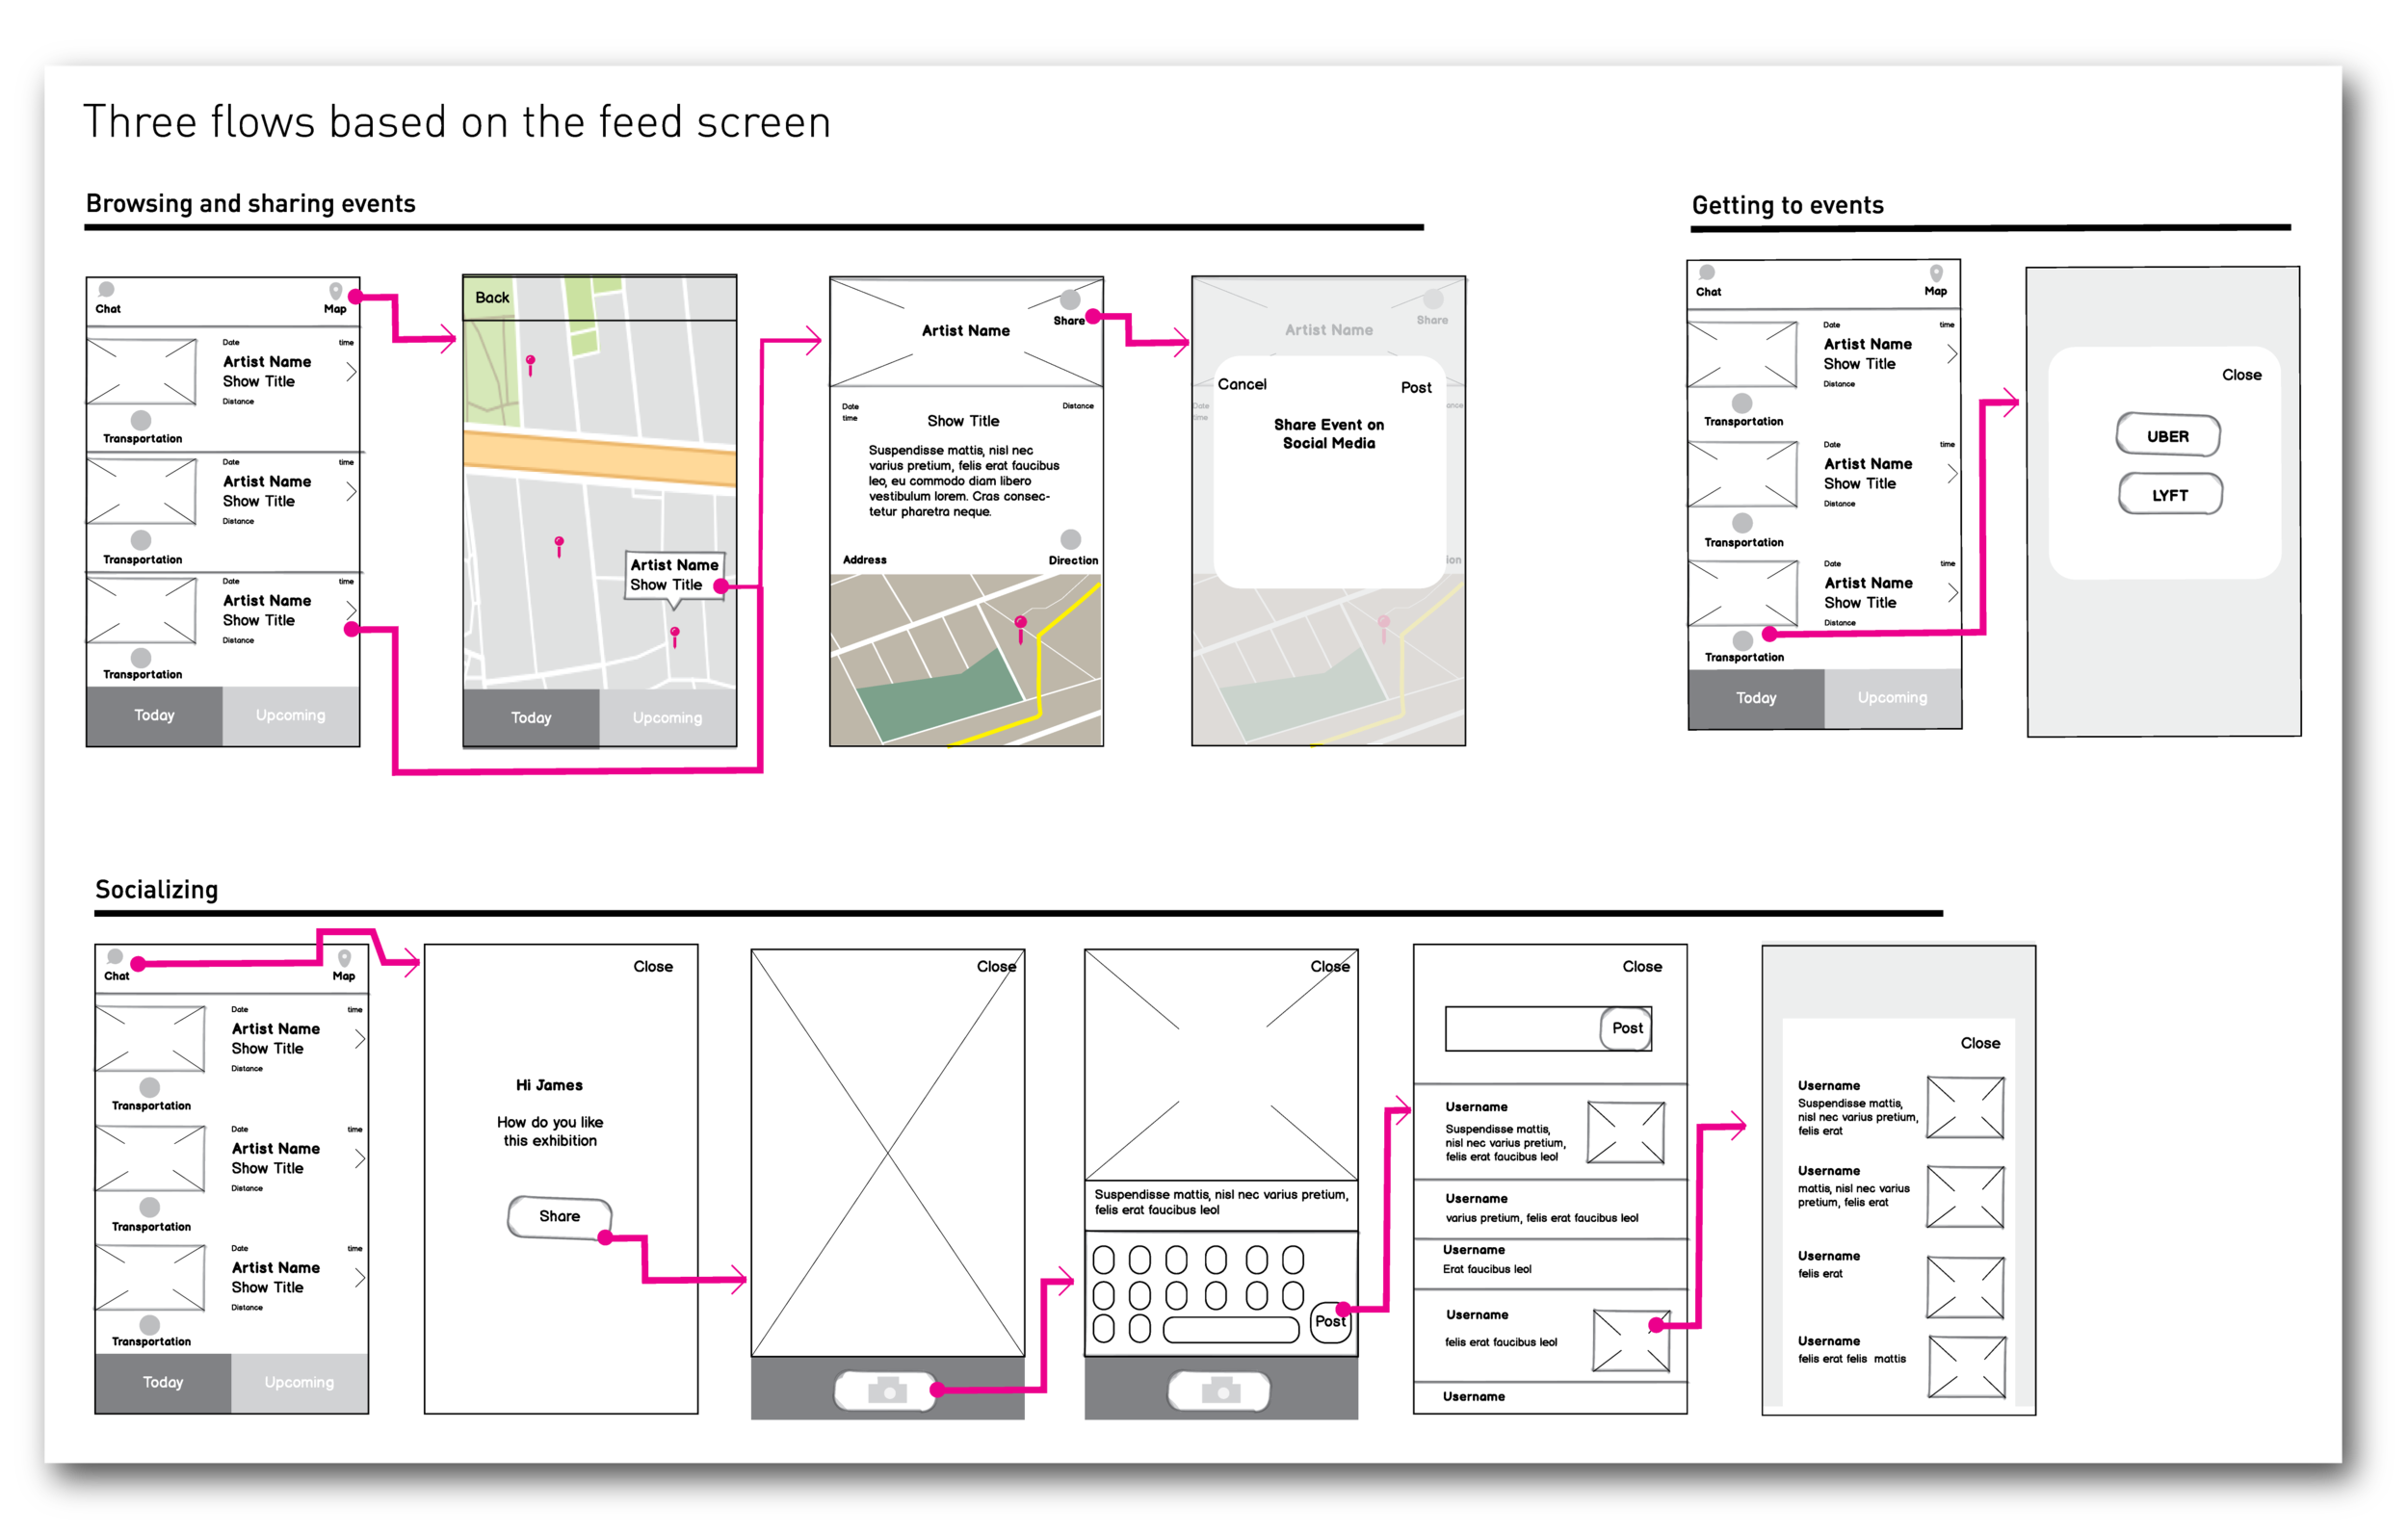 Three low-fi flows of the app. All flows start from the feed screen, which is the first screen you see on the app.